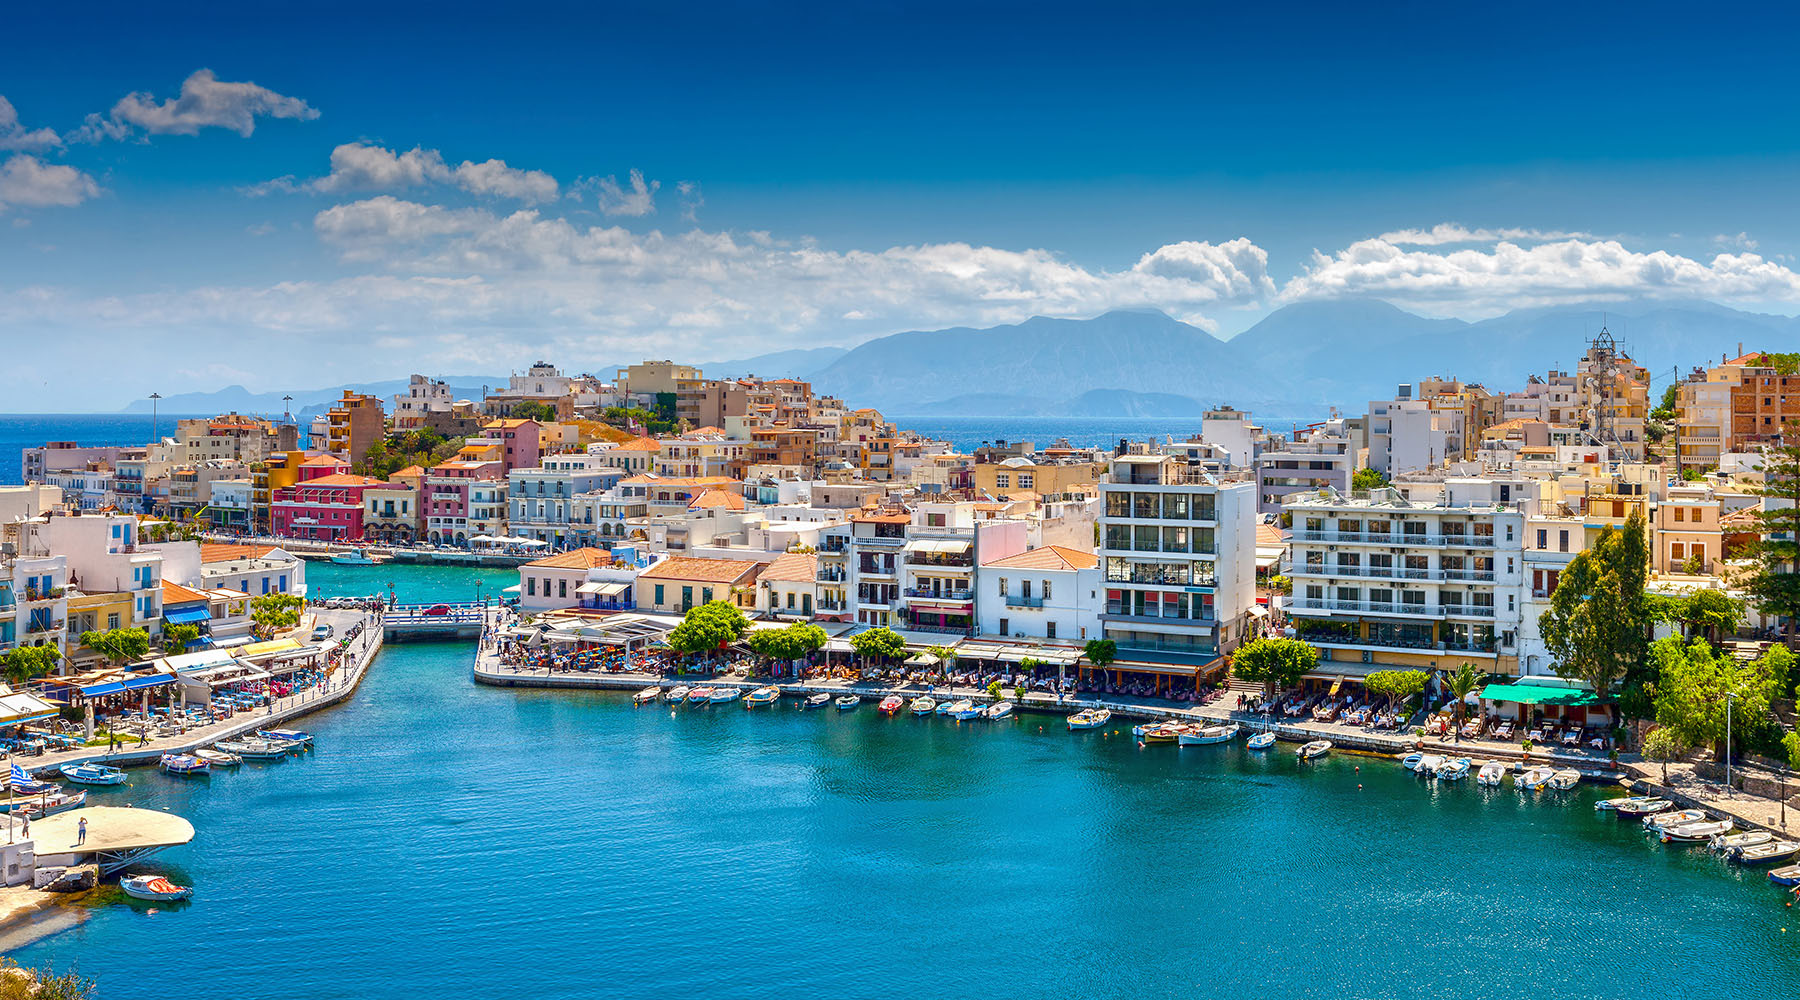 agios nikolaos chat sites Superior double rooms sea view private pool in crete, superior double rooms sea view private pool agios nikolaos, superior double rooms sea view private pool.